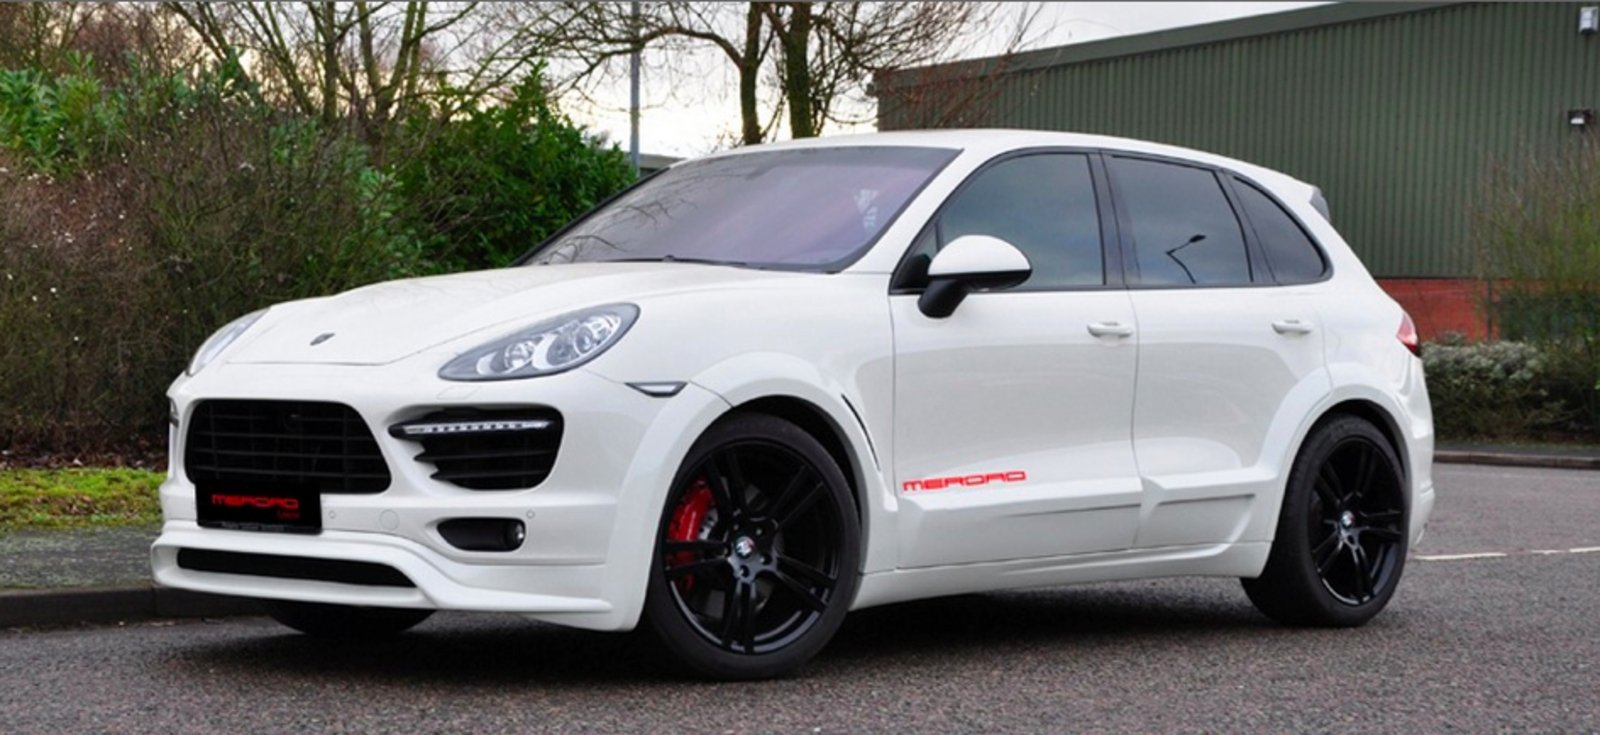 2011 porsche cayenne turbo white by merdad review top speed. Black Bedroom Furniture Sets. Home Design Ideas